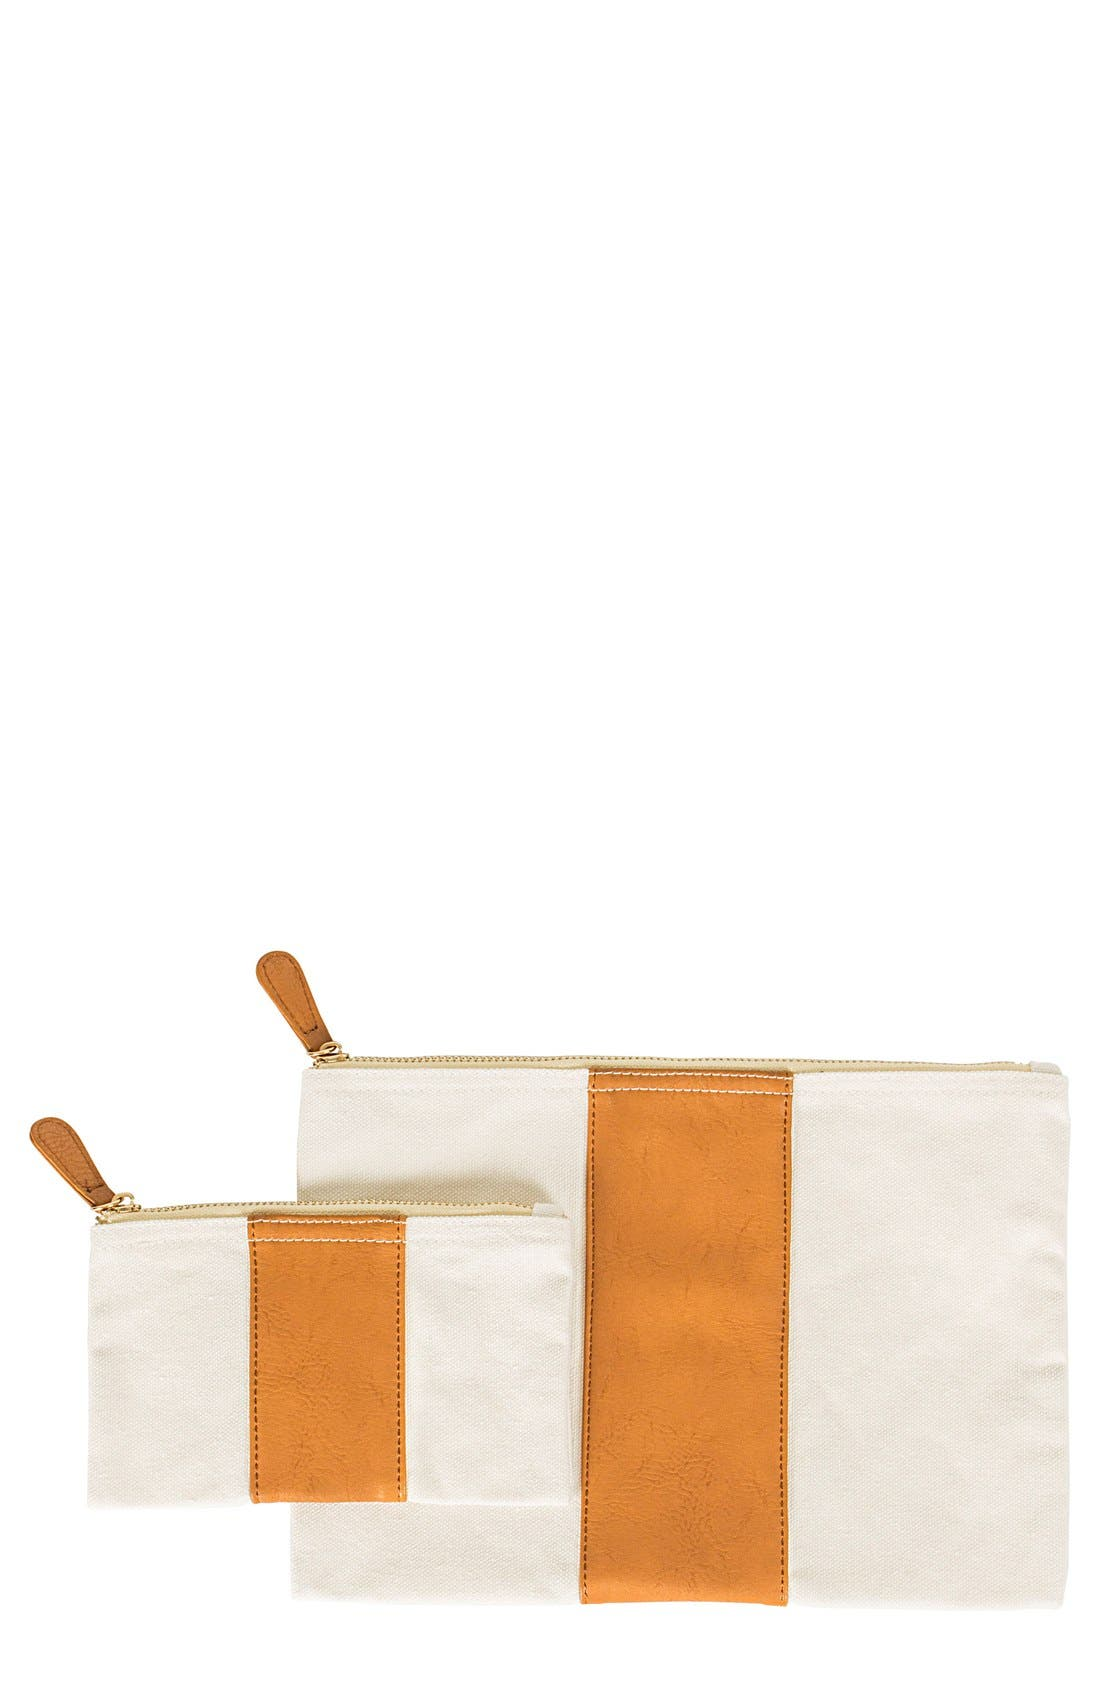 CATHY'S CONCEPTS Personalized Faux Leather Clutch, Main, color, 200